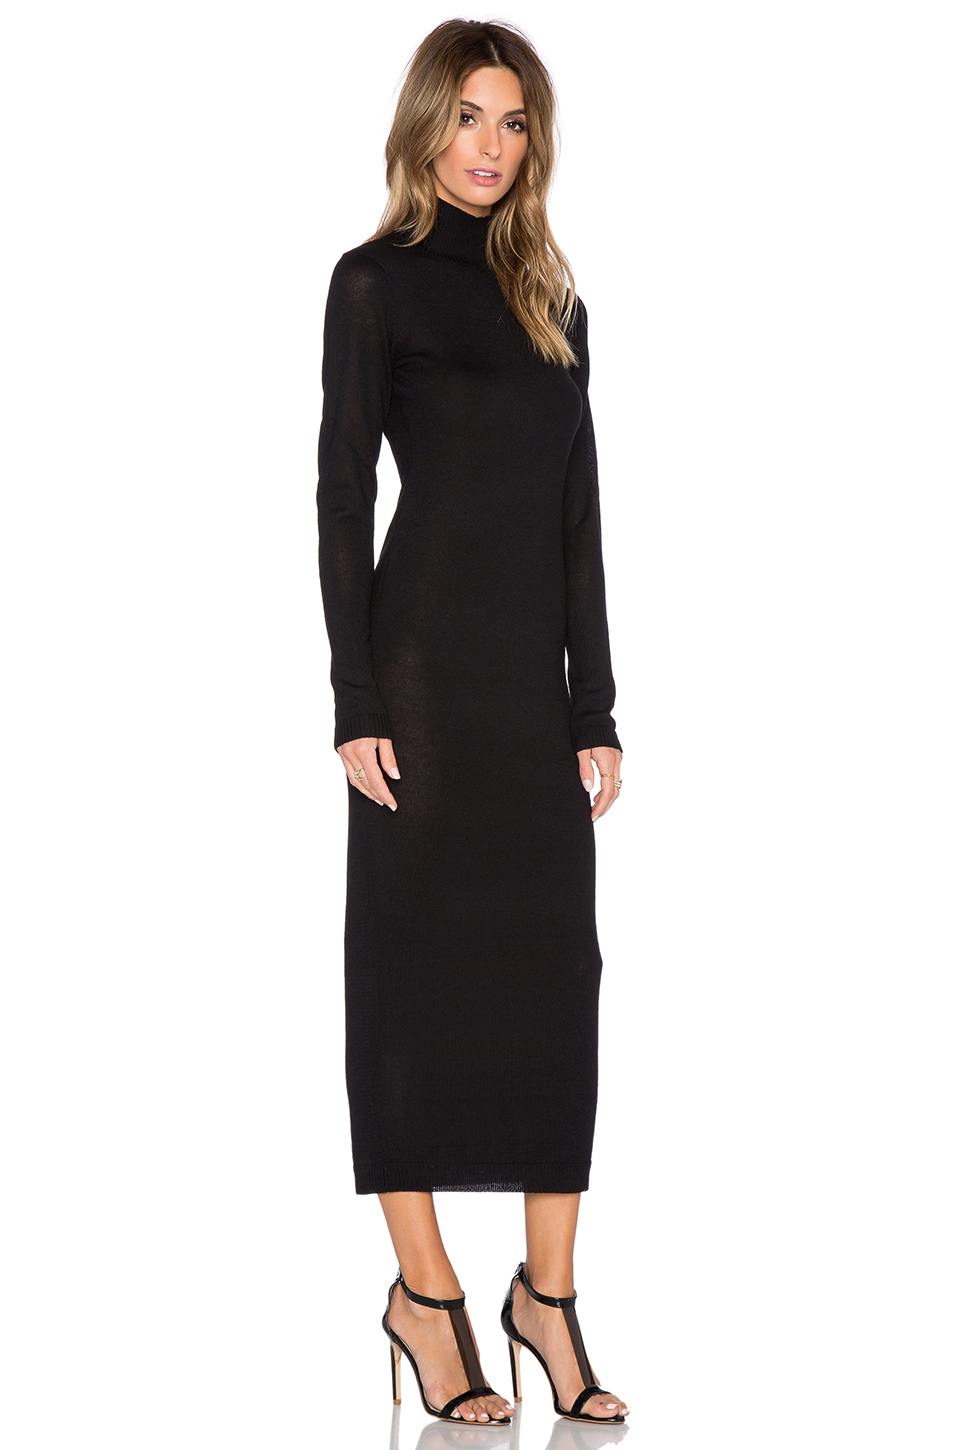 Black Long Sleeve Sweater Dress